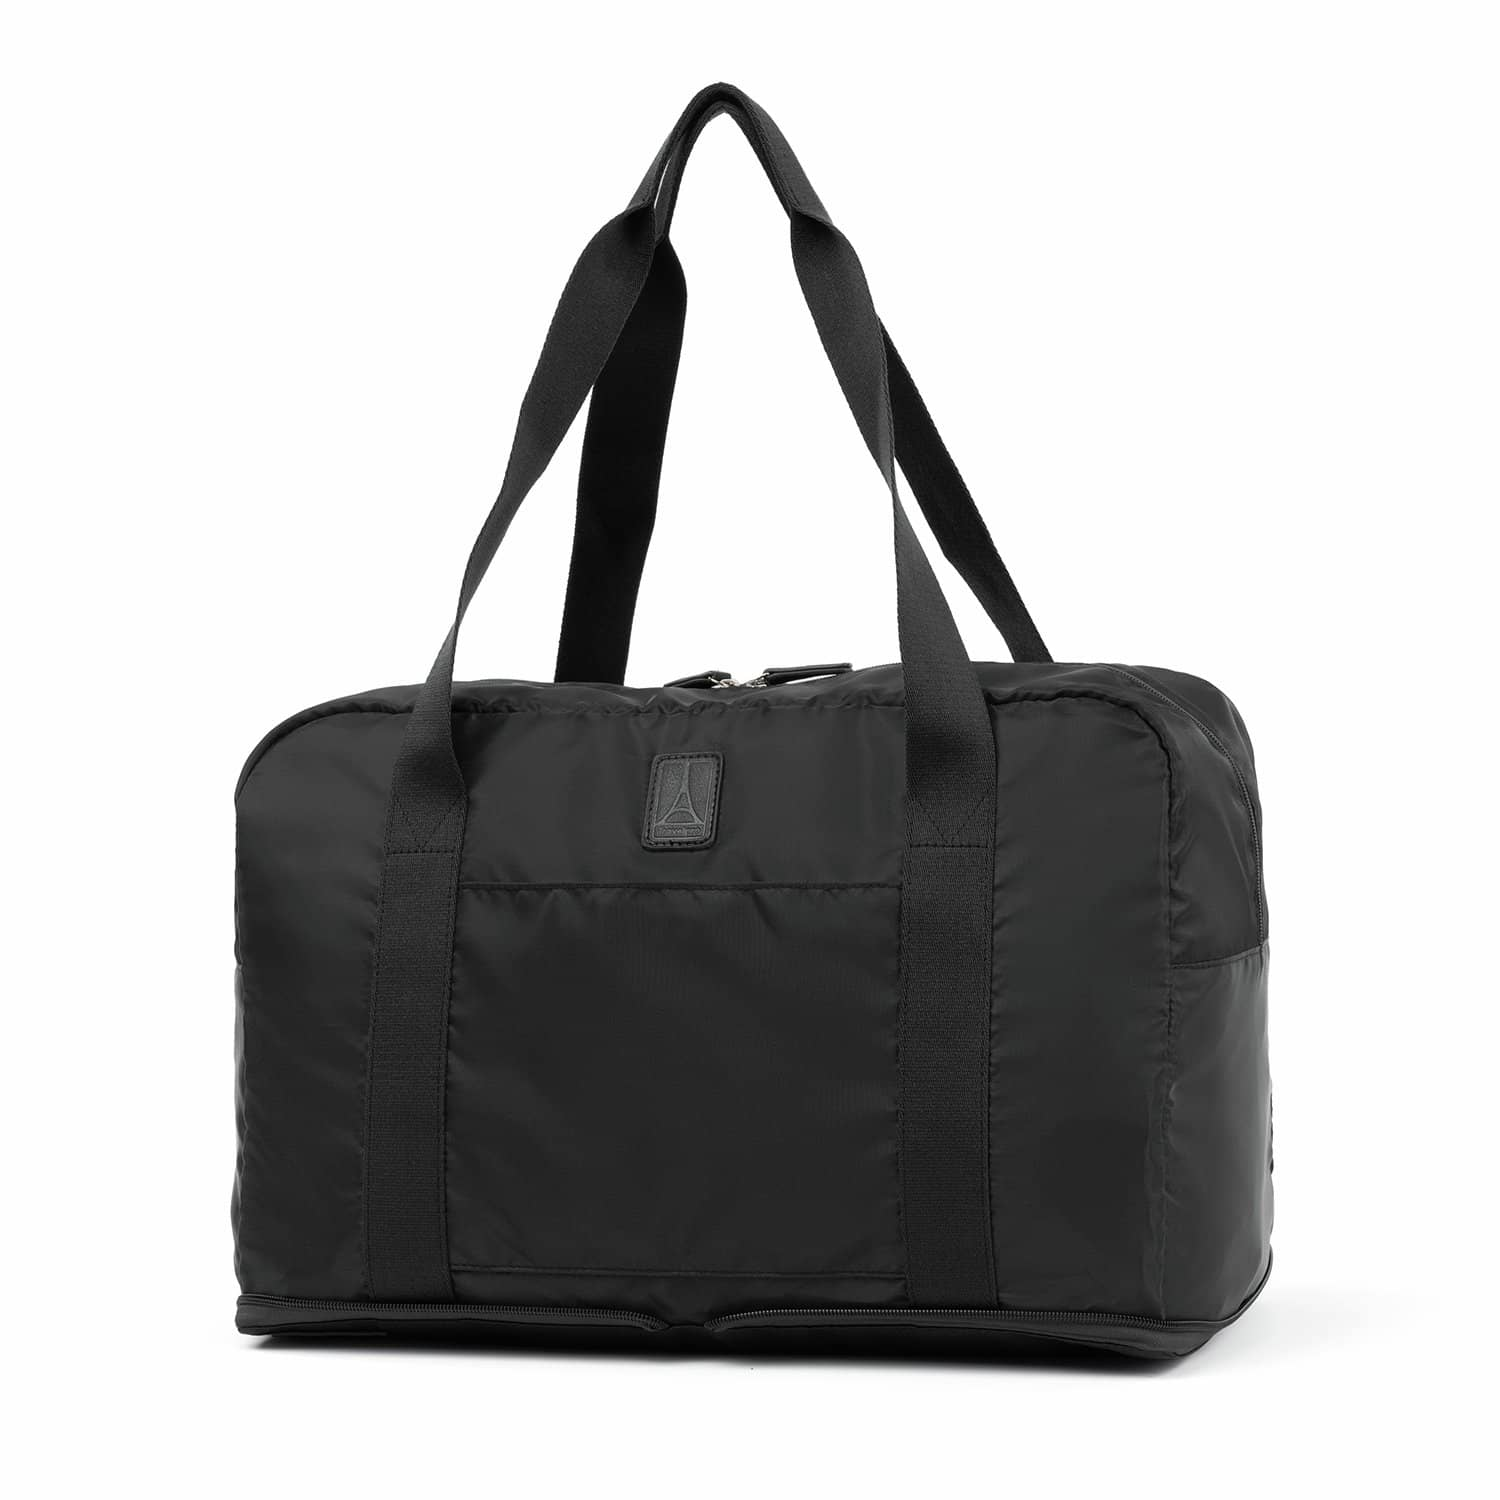 Travelpro Travelpro® Essentials™ Sparepack™ Foldable Duffel BLACK